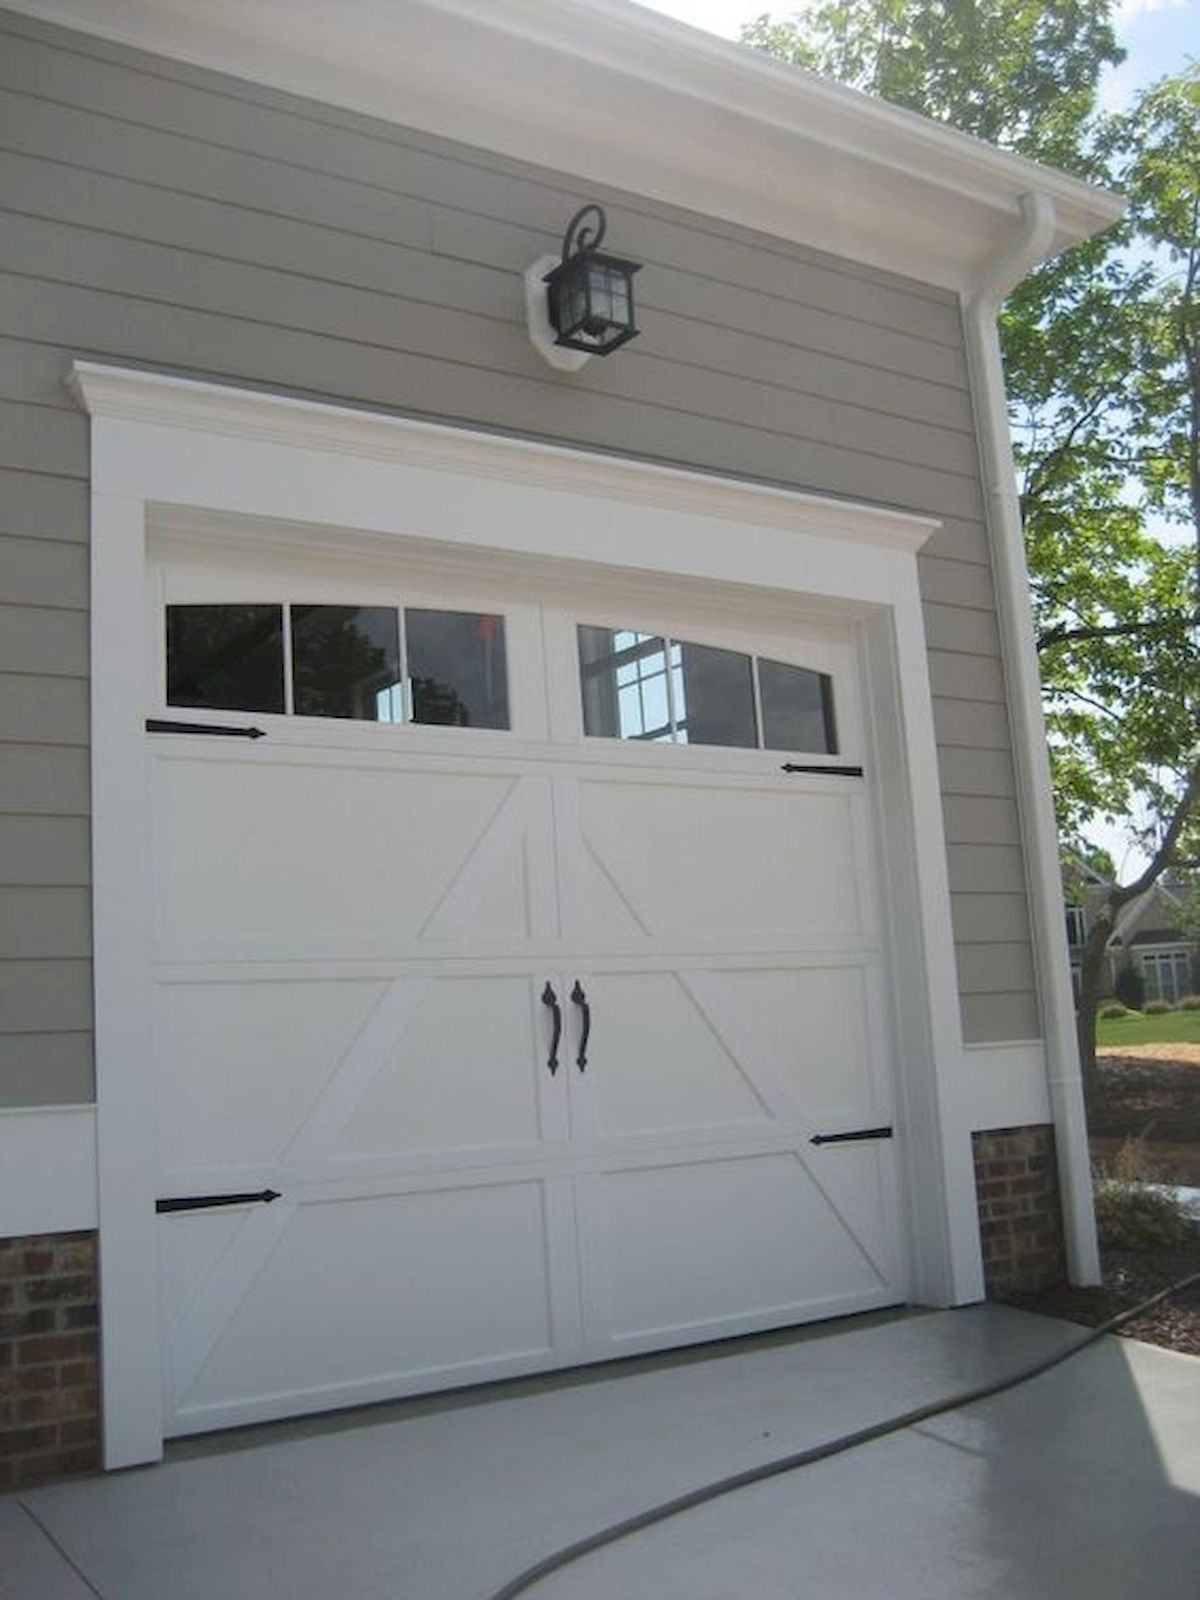 Garage Shed 443393594503199158 In 2020 Garage Door Colors Garage Door Design Garage Door Trim